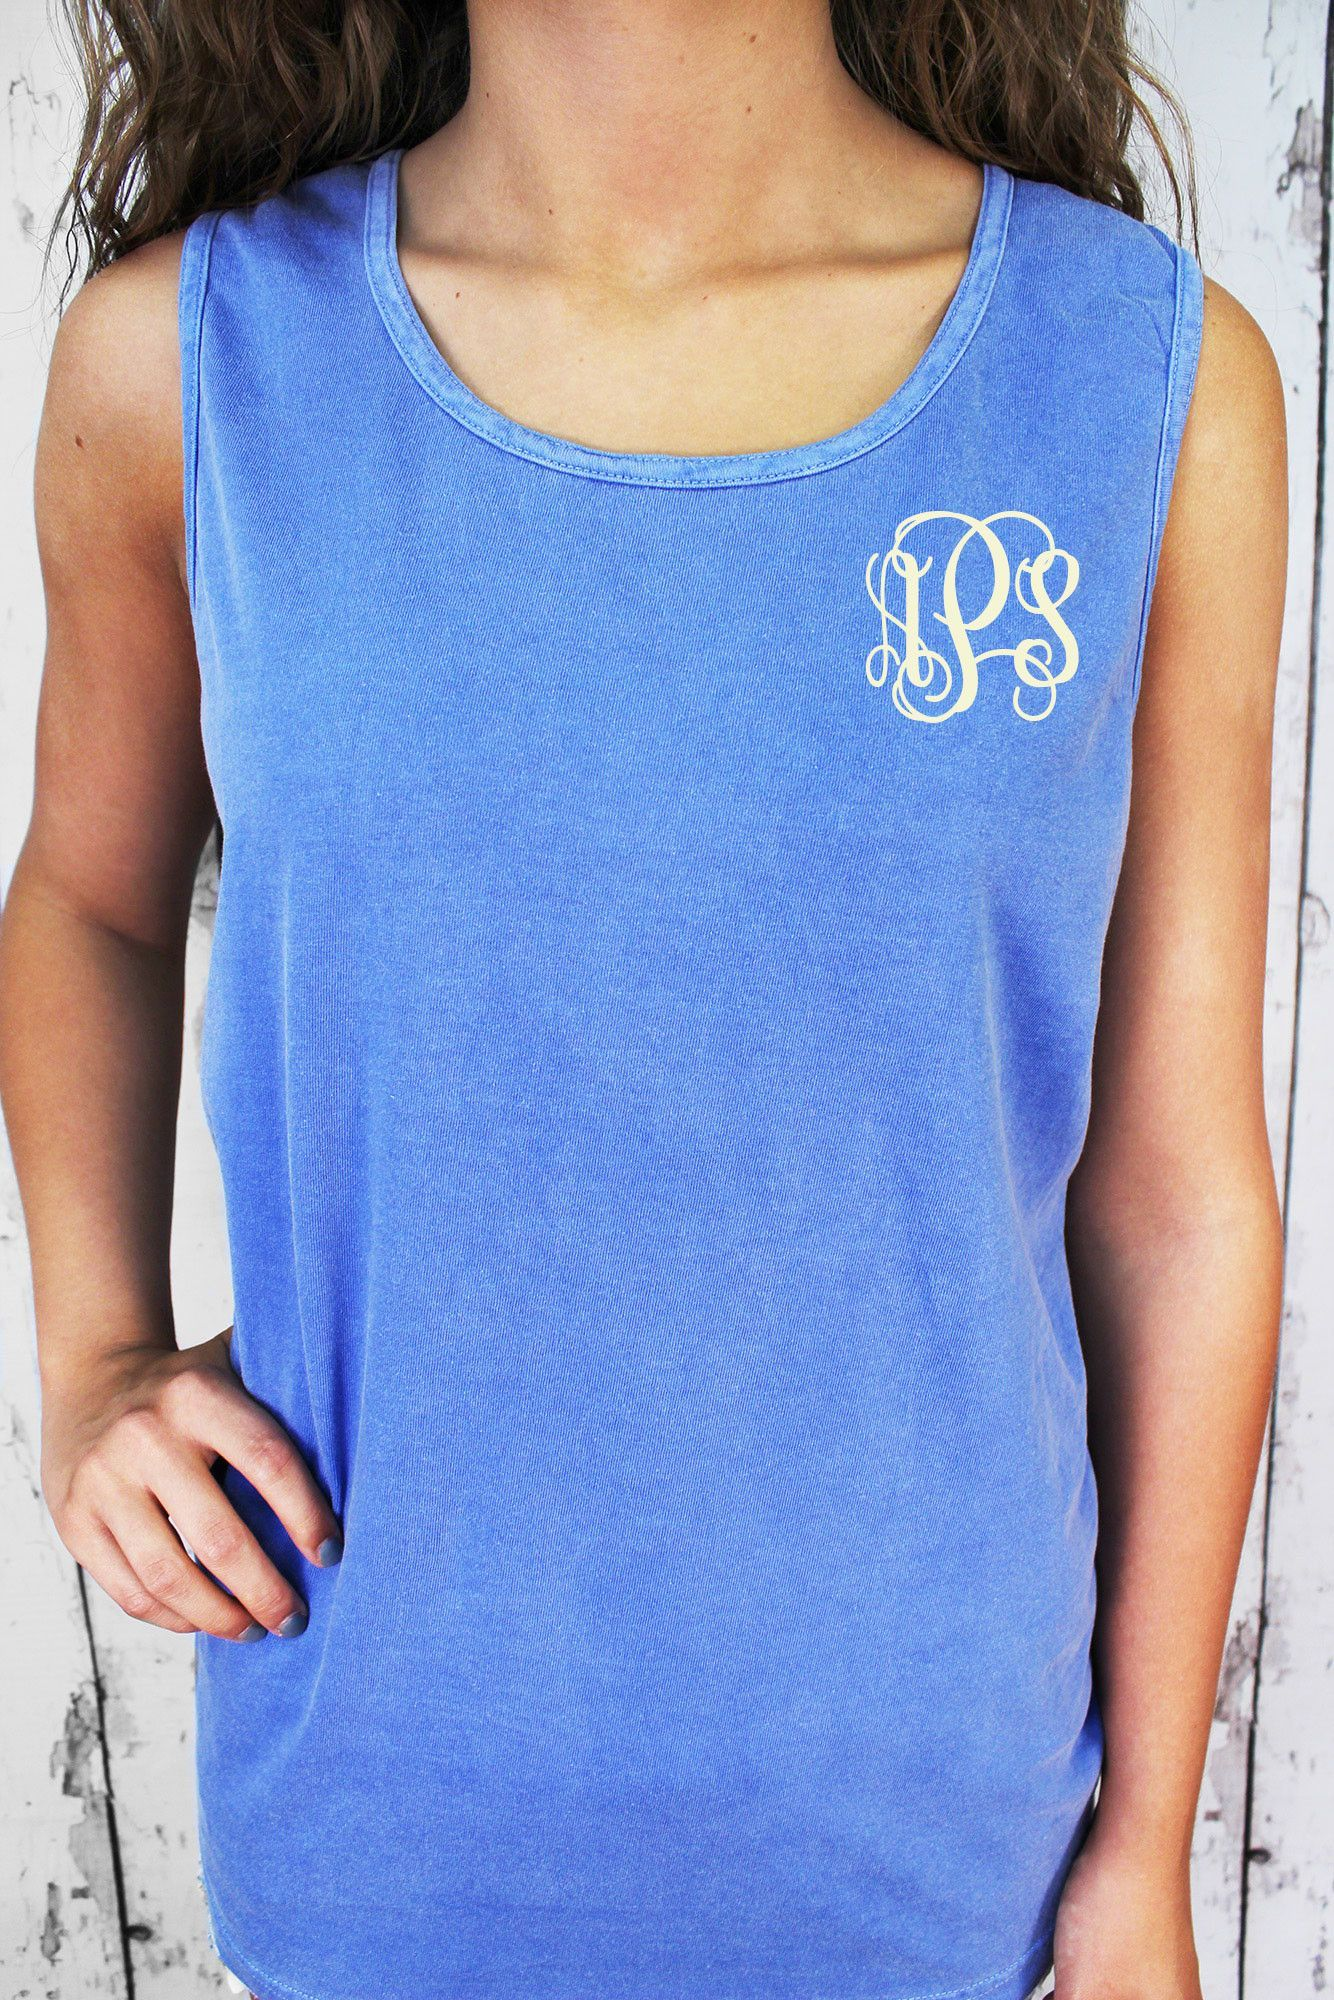 95ac2a2041e2c Shades of Blue Comfort Colors Cotton Tank Top  9360  Personalize It ...